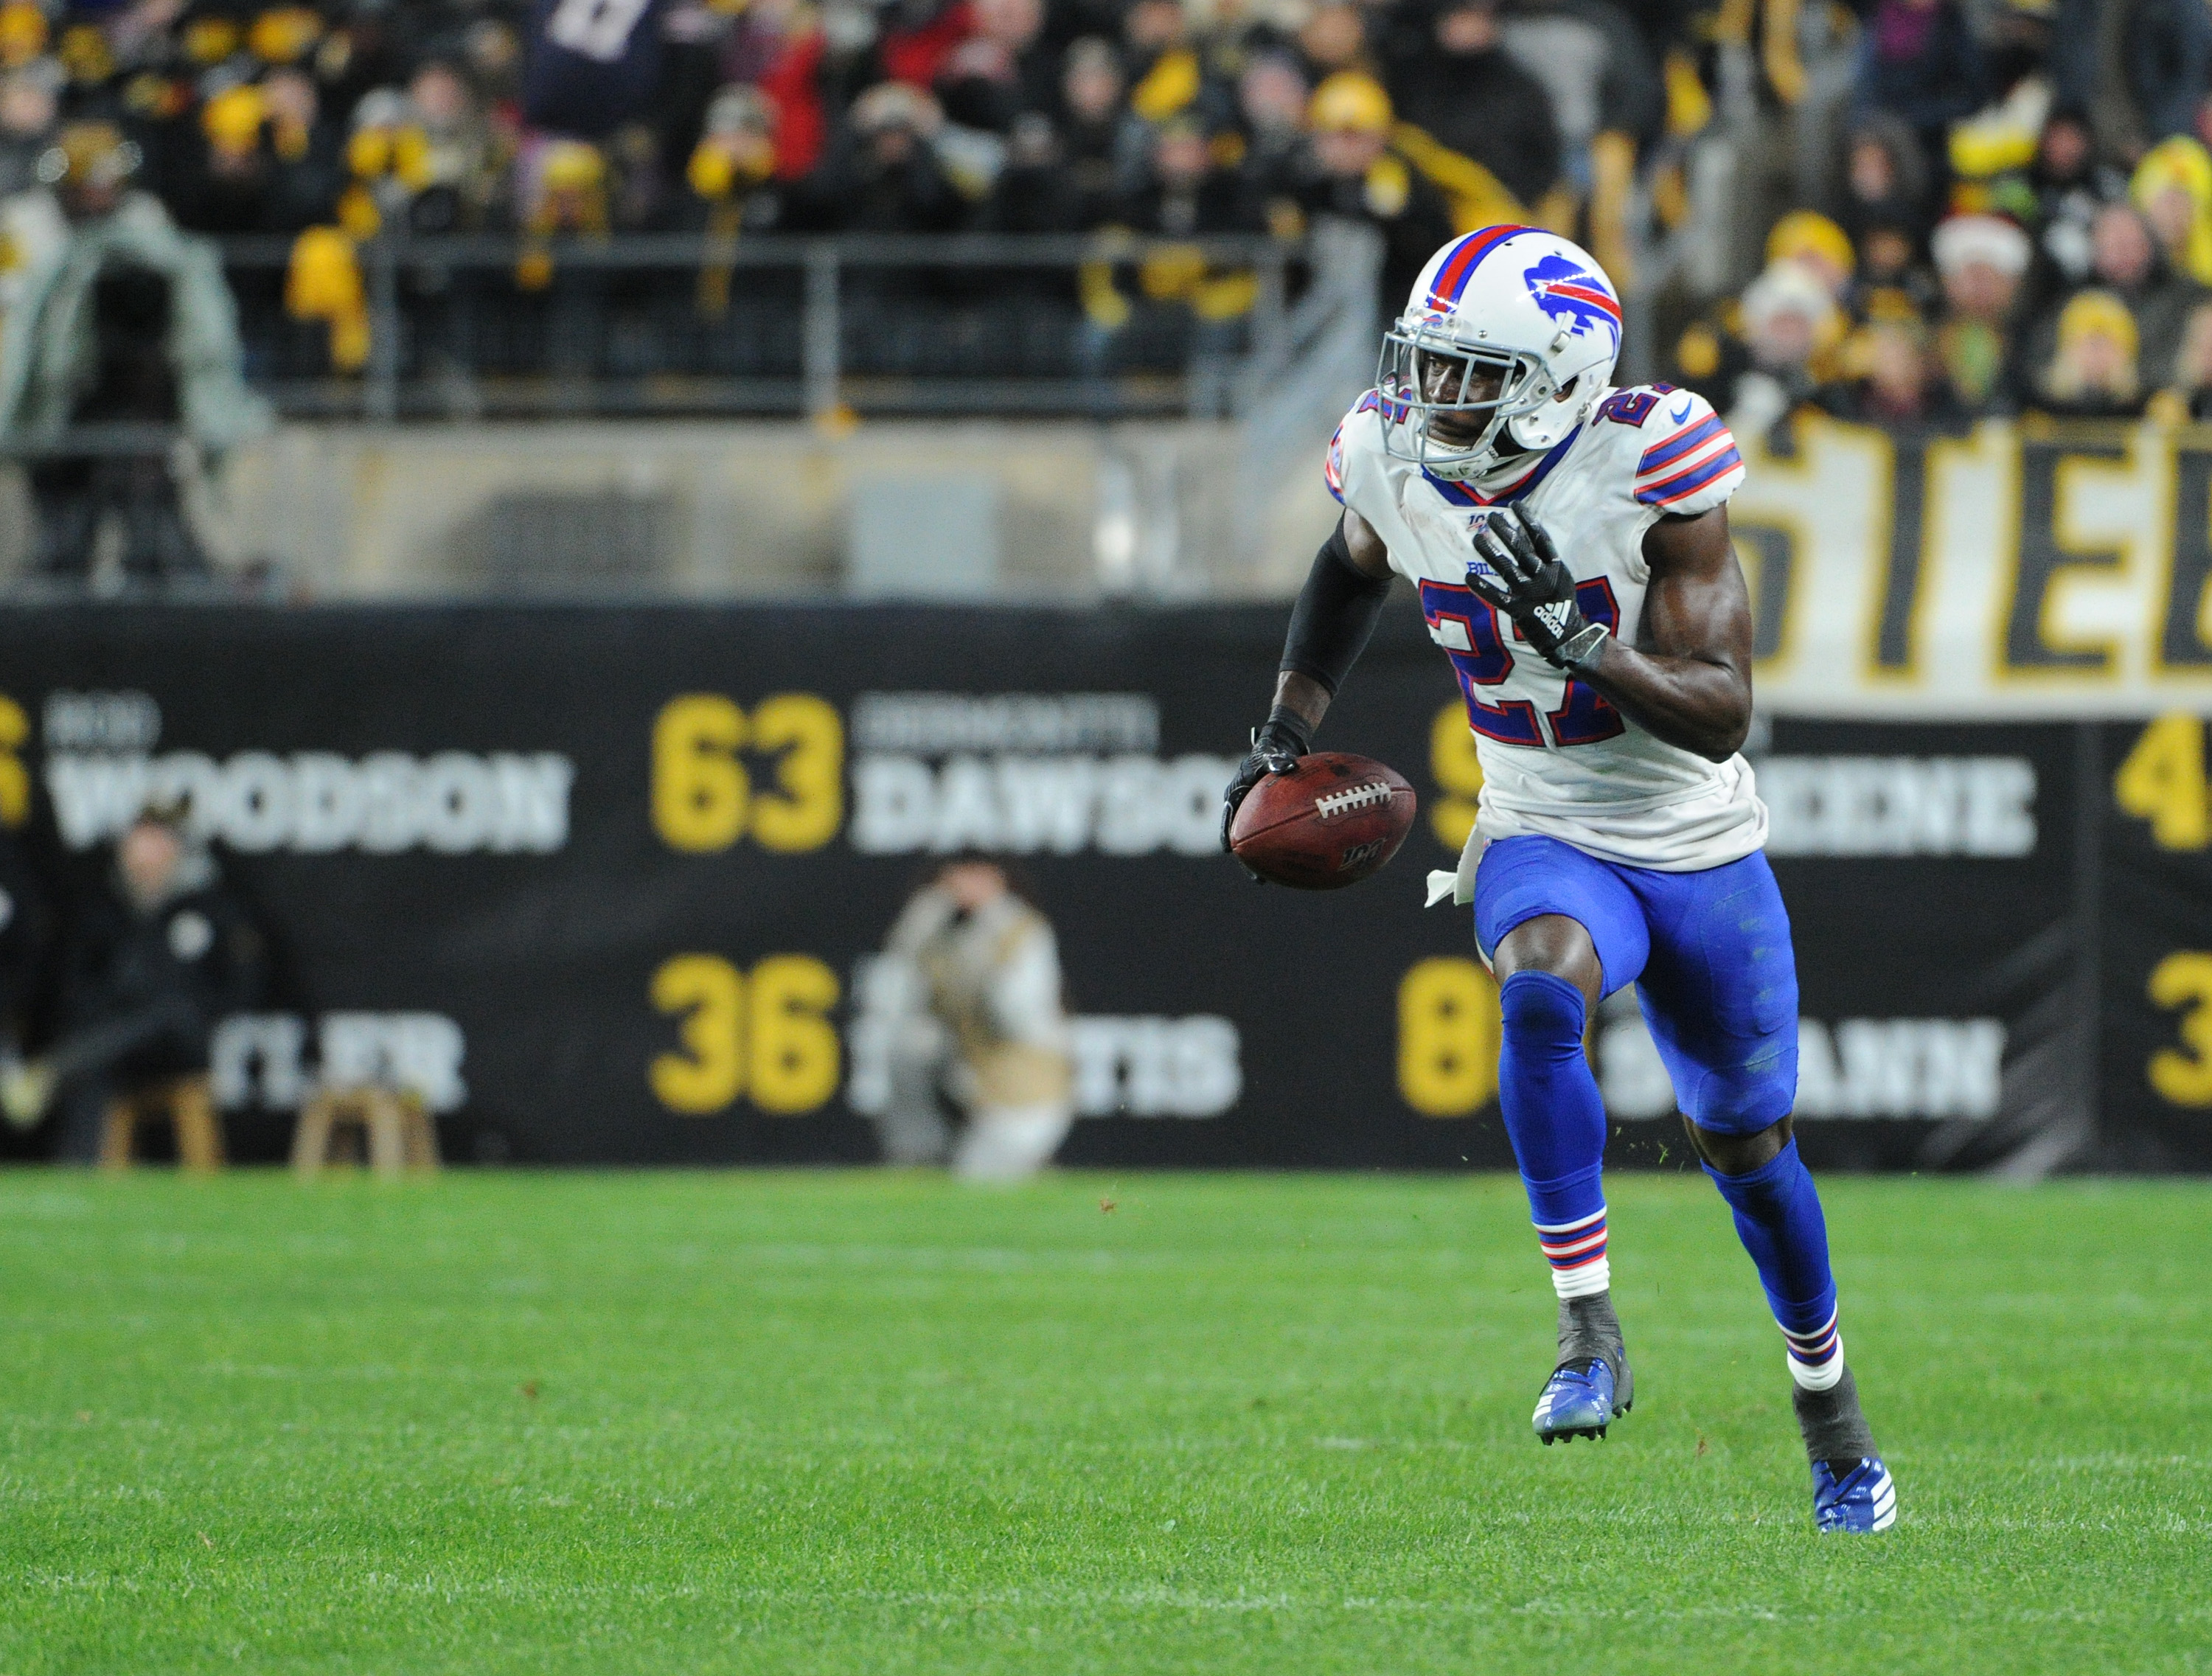 Opt Out U-Turn Sees Tre' Davious White Back in NFL Action